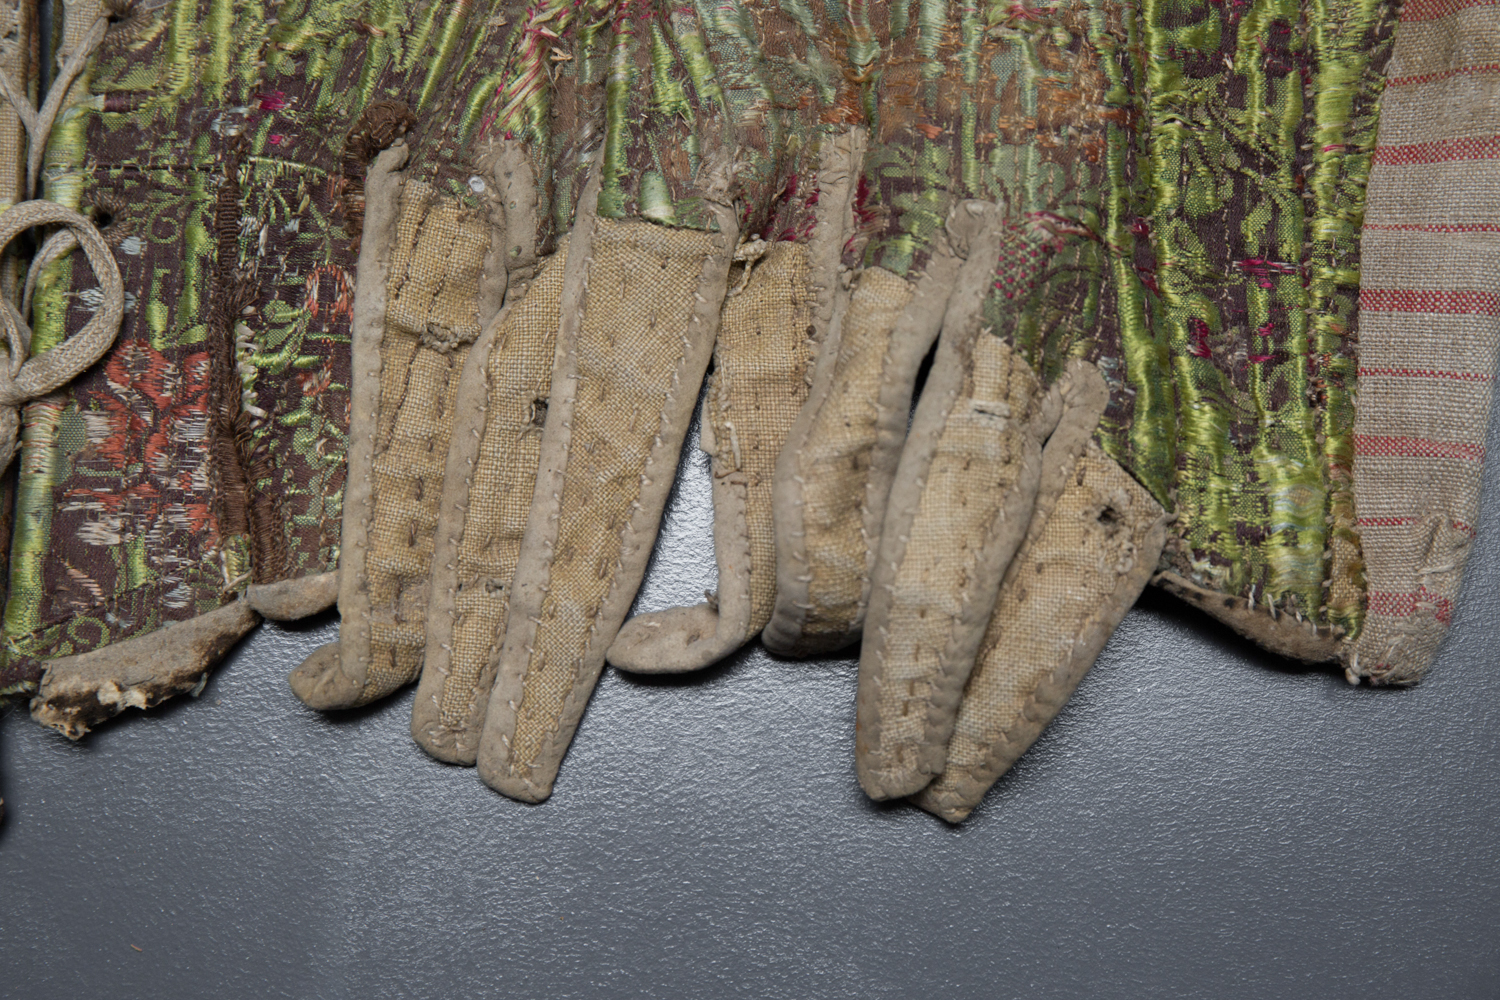 Silk Brocade Whaleboned Stays, c. 1770s, Austria. The Underpinnings Museum. Photography by Tigz Rice.